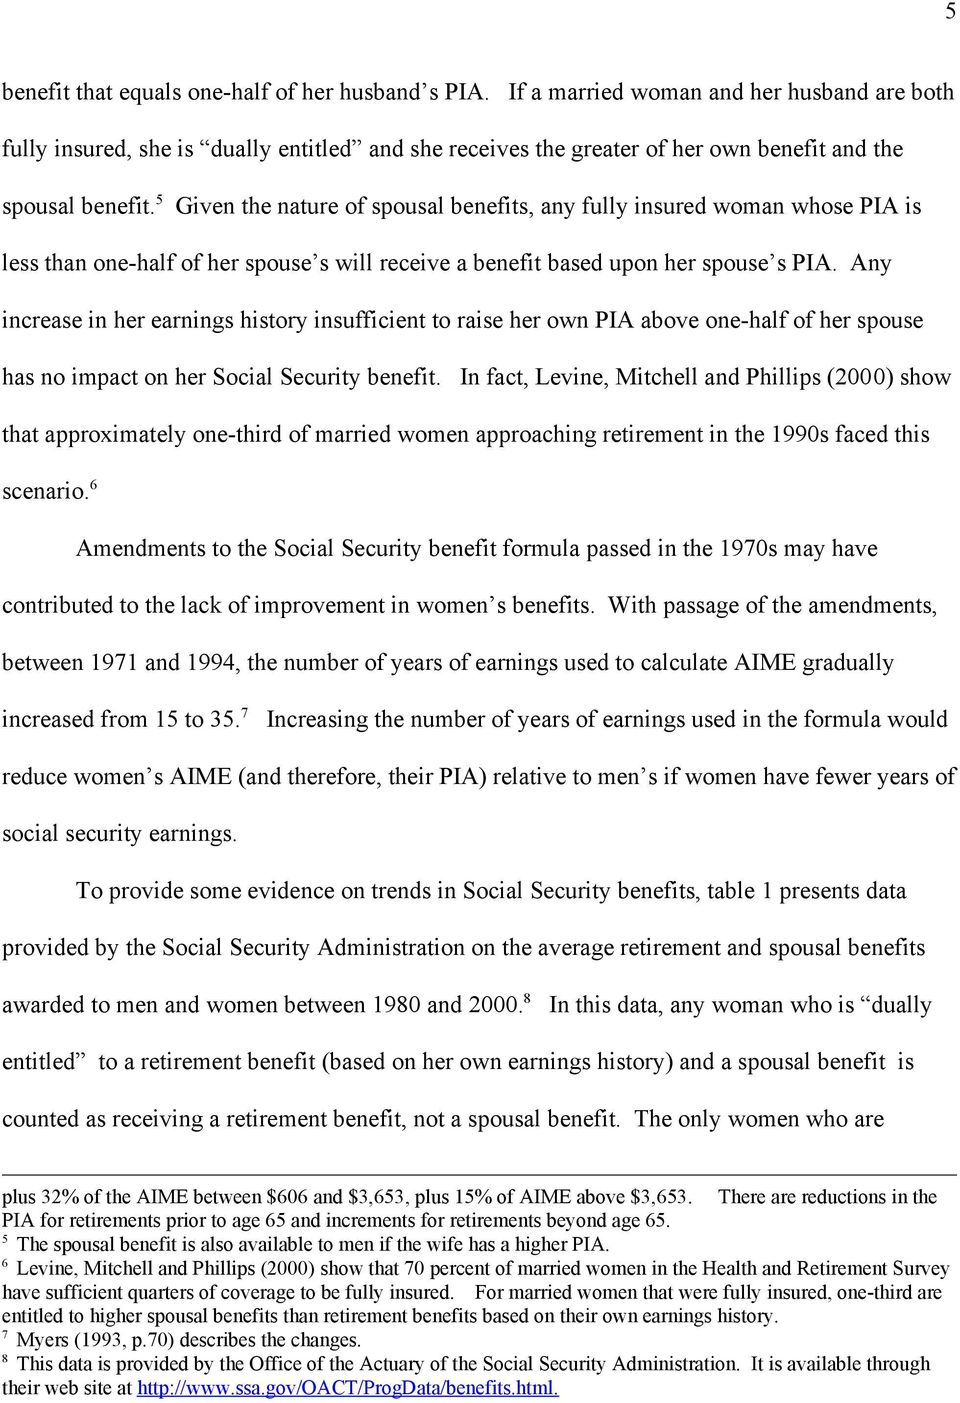 5 Given the nature of spousal benefits, any fully insured woman whose PIA is less than one-half of her spouse s will receive a benefit based upon her spouse s PIA.